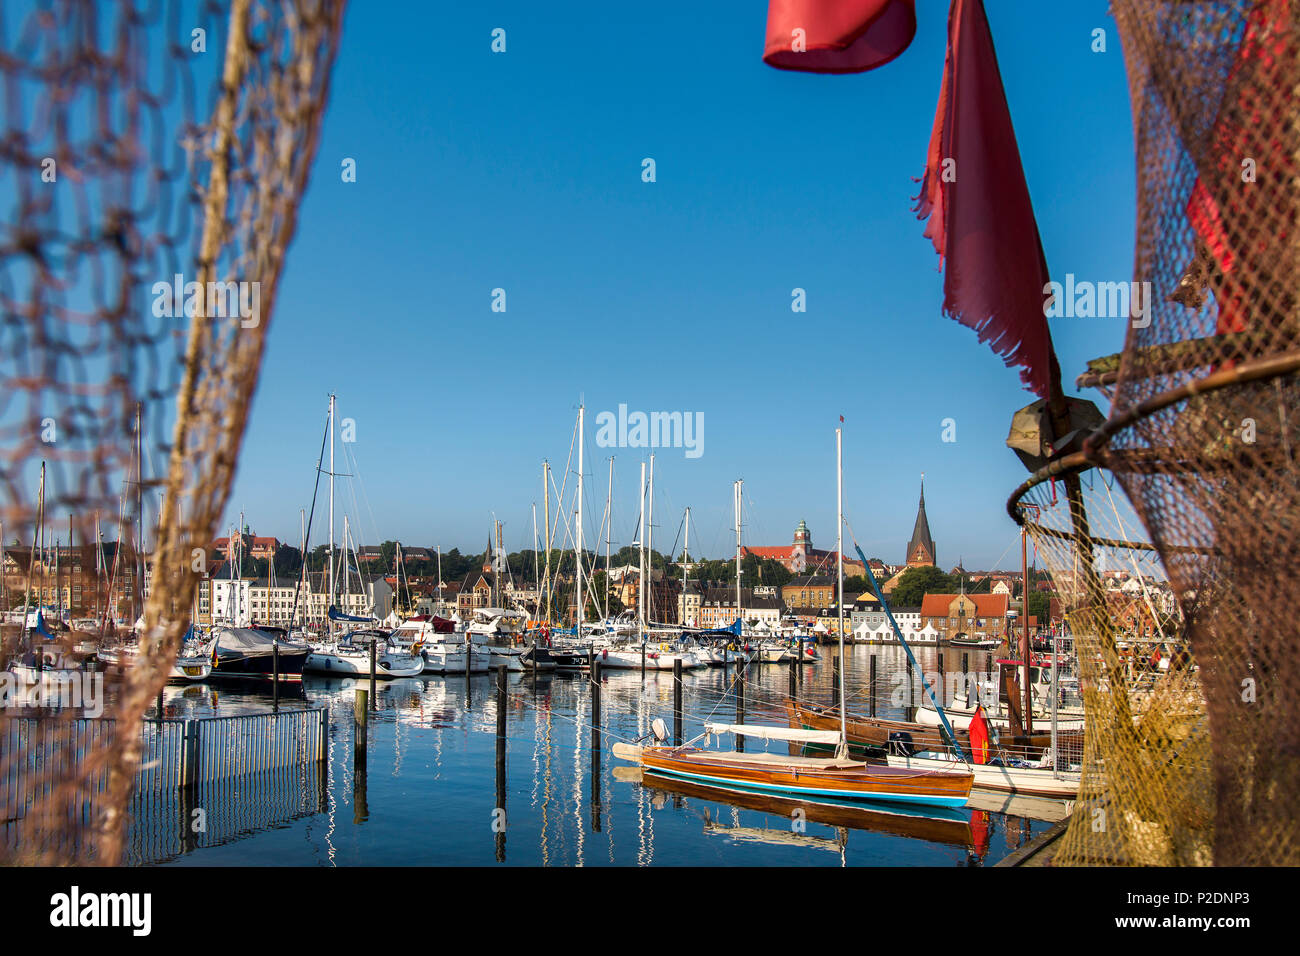 View through a fishing net towards the old town, Flensburg, Baltic Coast, Schleswig-Holstein, Germany - Stock Image